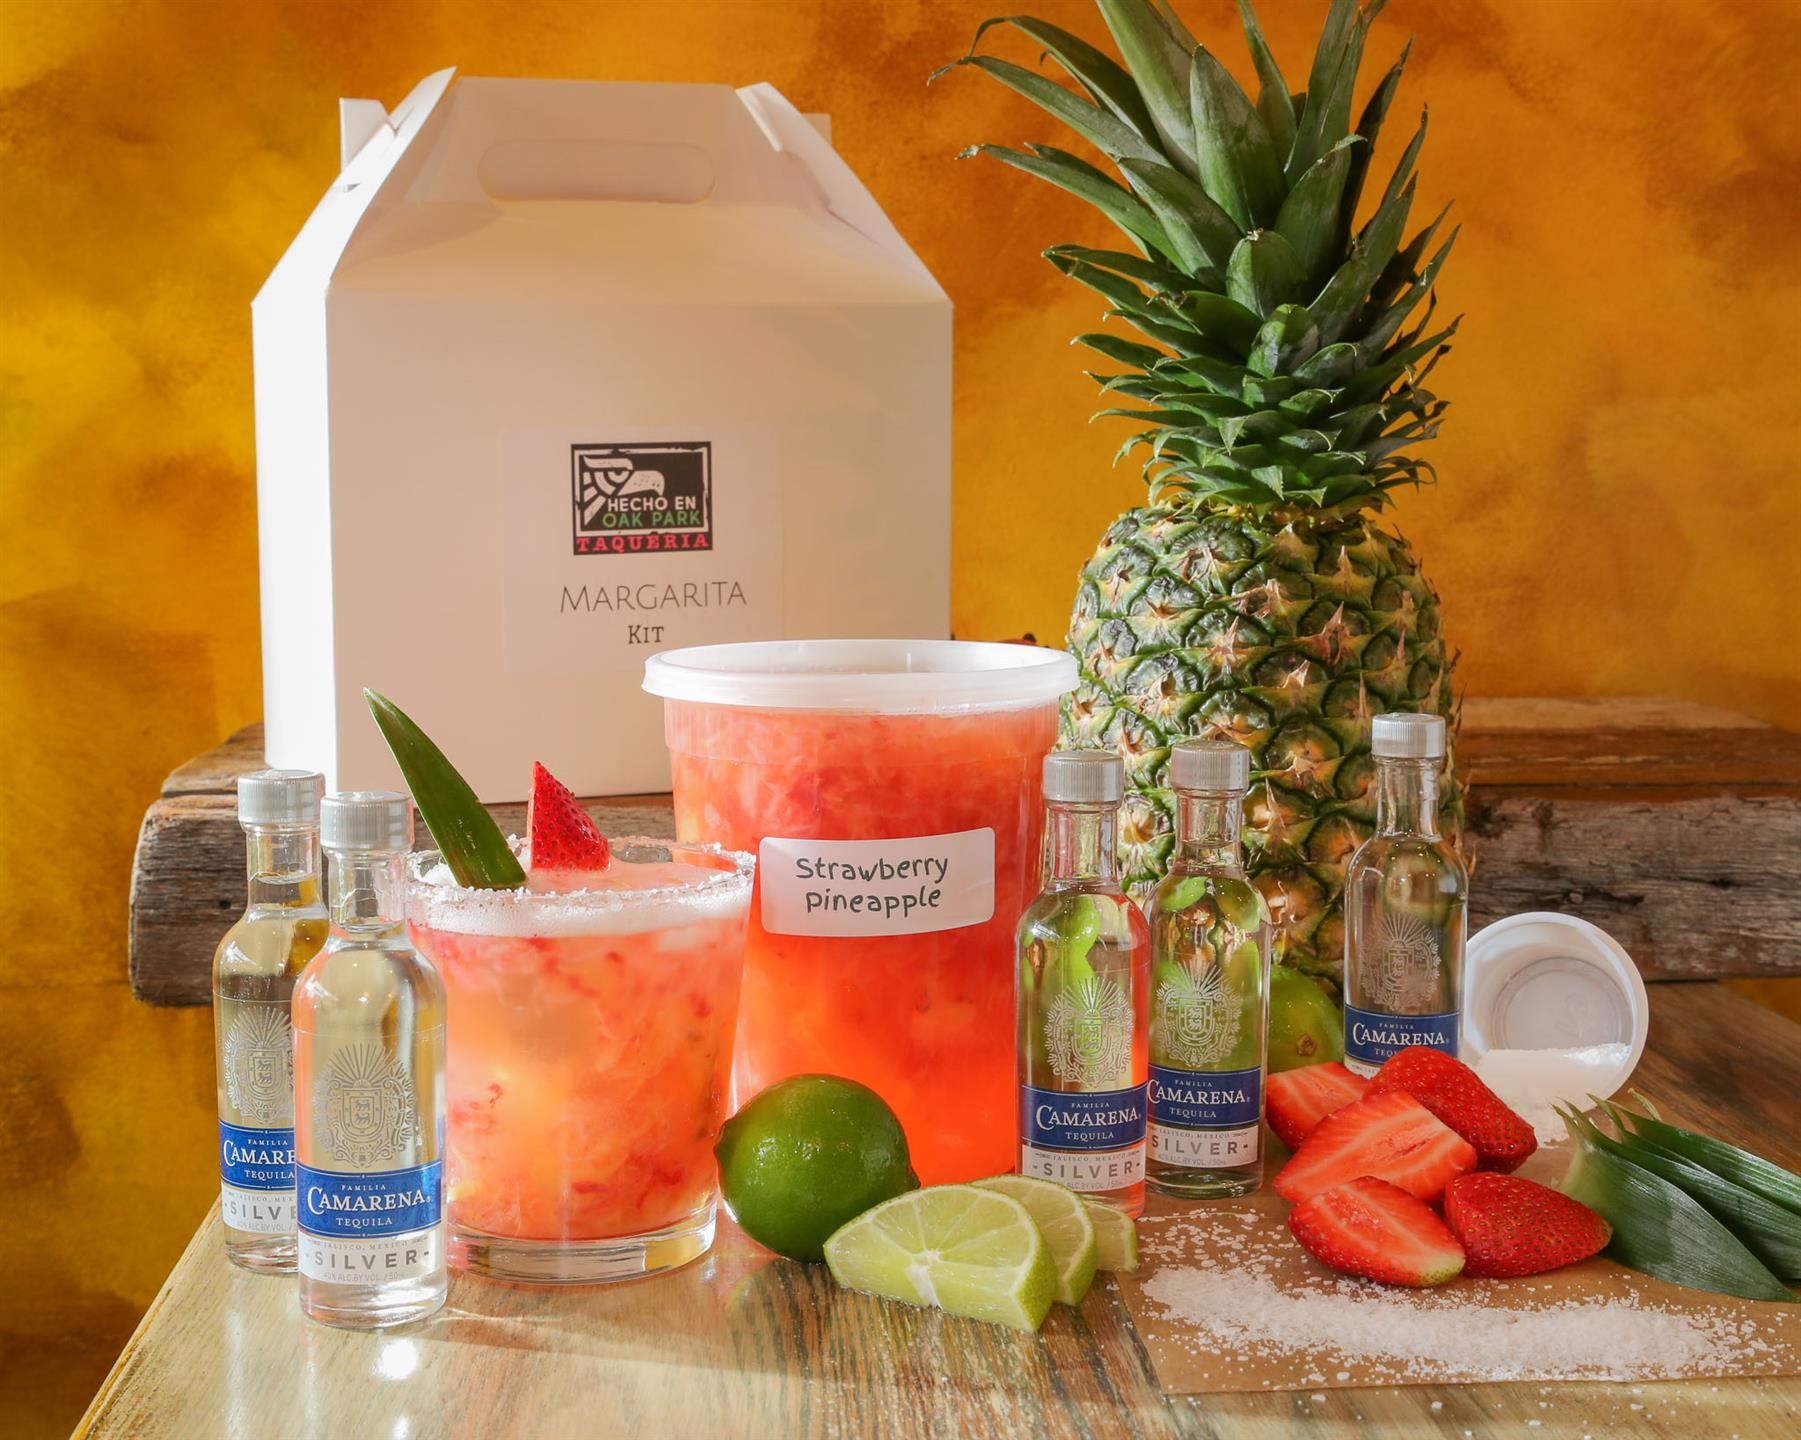 a strawberry margarita with a salted rim and an assortment of vodka, limes, fresh strawberries, salt and a pineapple all laid out on a table